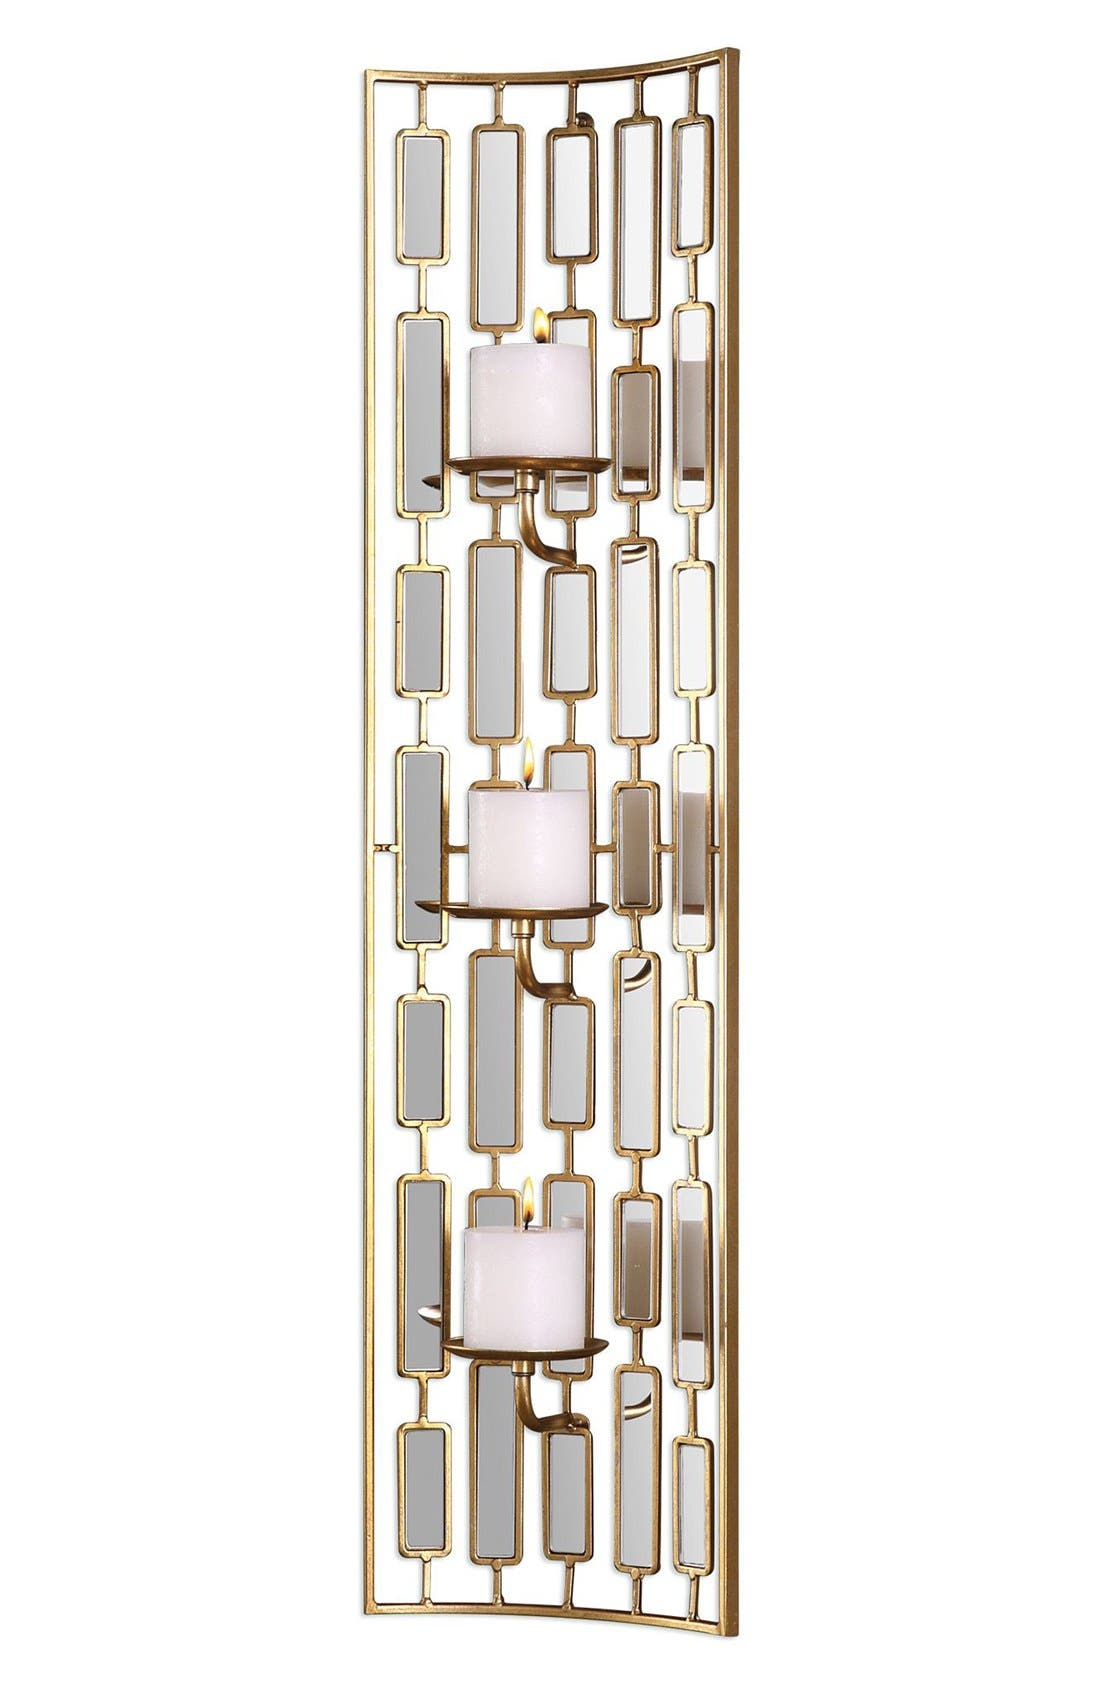 Mirrored Candleholder Wall Sconce,                             Main thumbnail 1, color,                             710